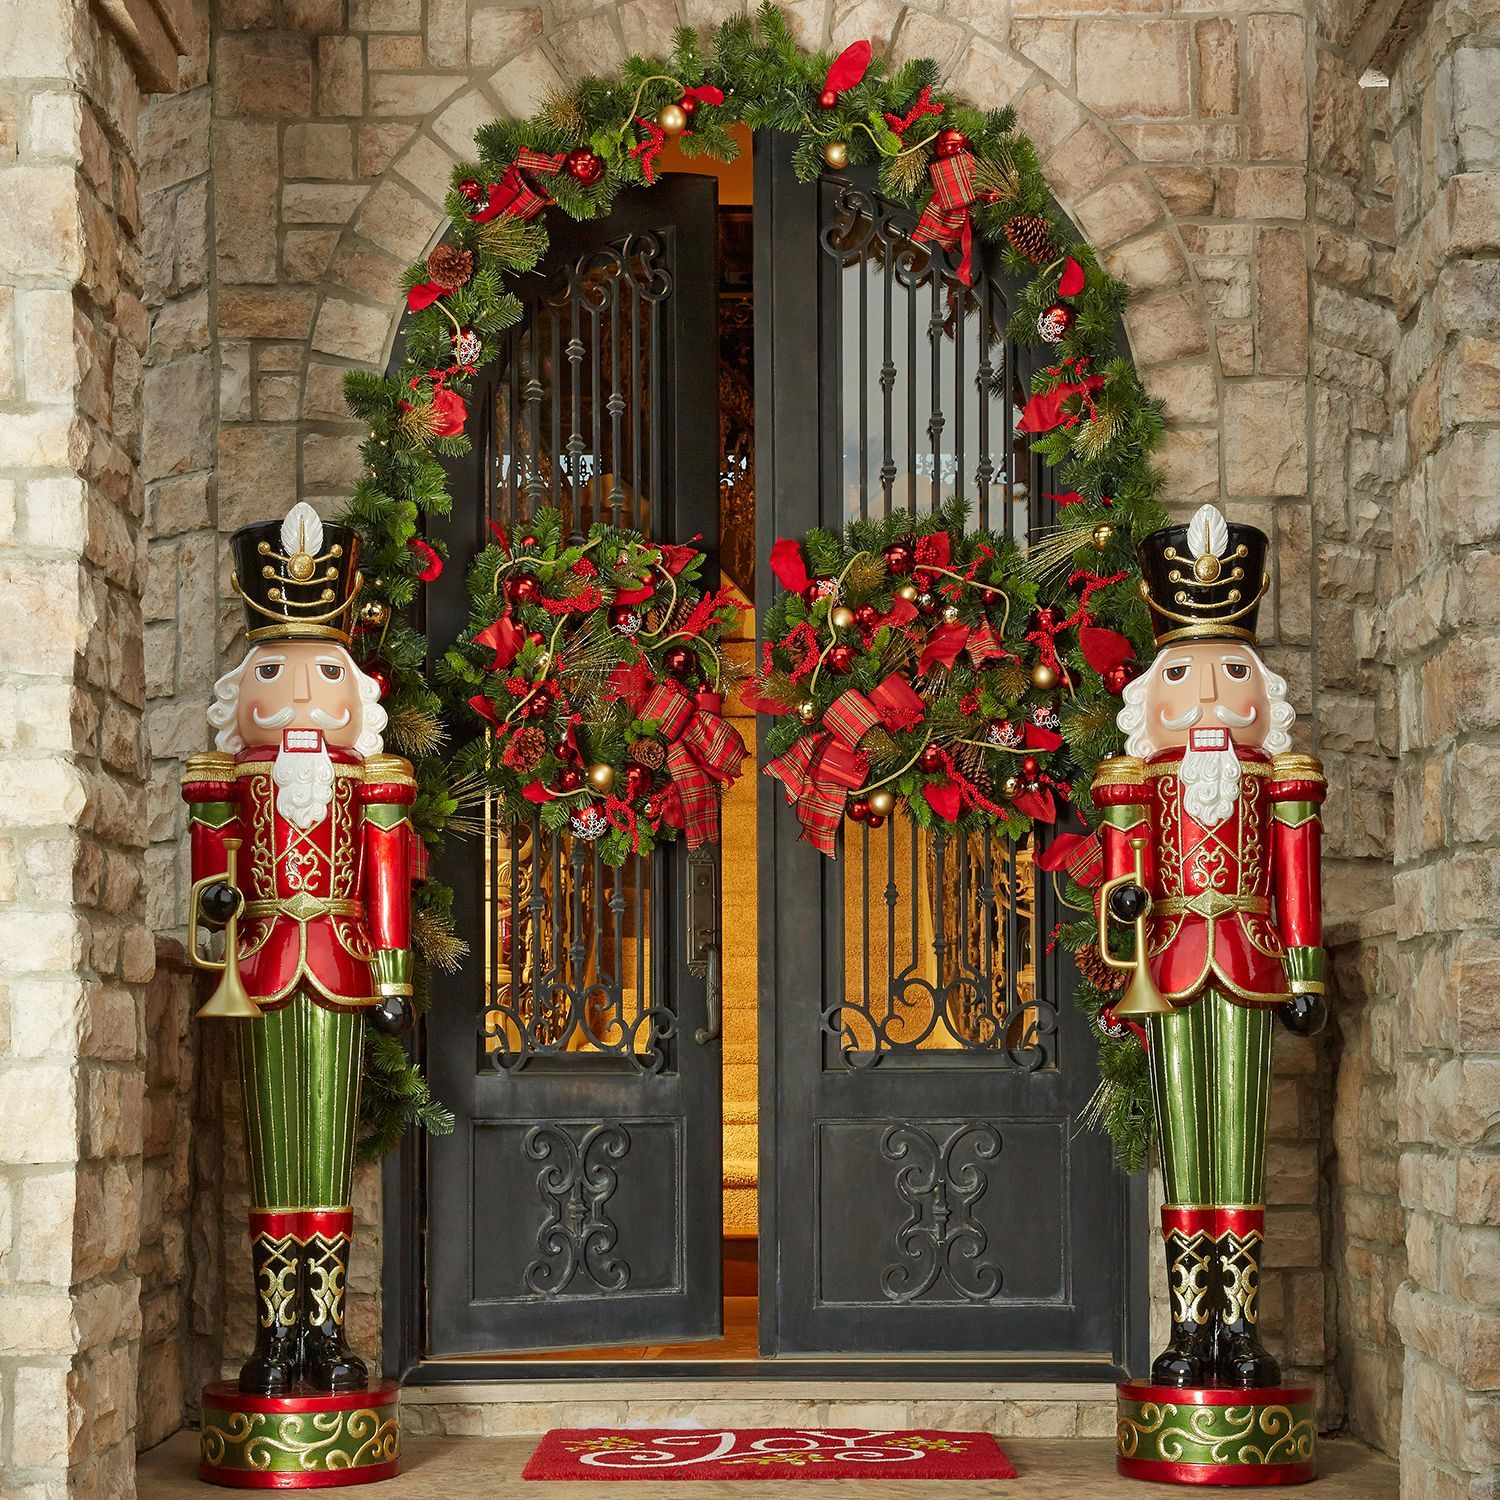 sams club toy soldier nutcrackers 6 feet tall - Sams Club Christmas Decorations Outdoor